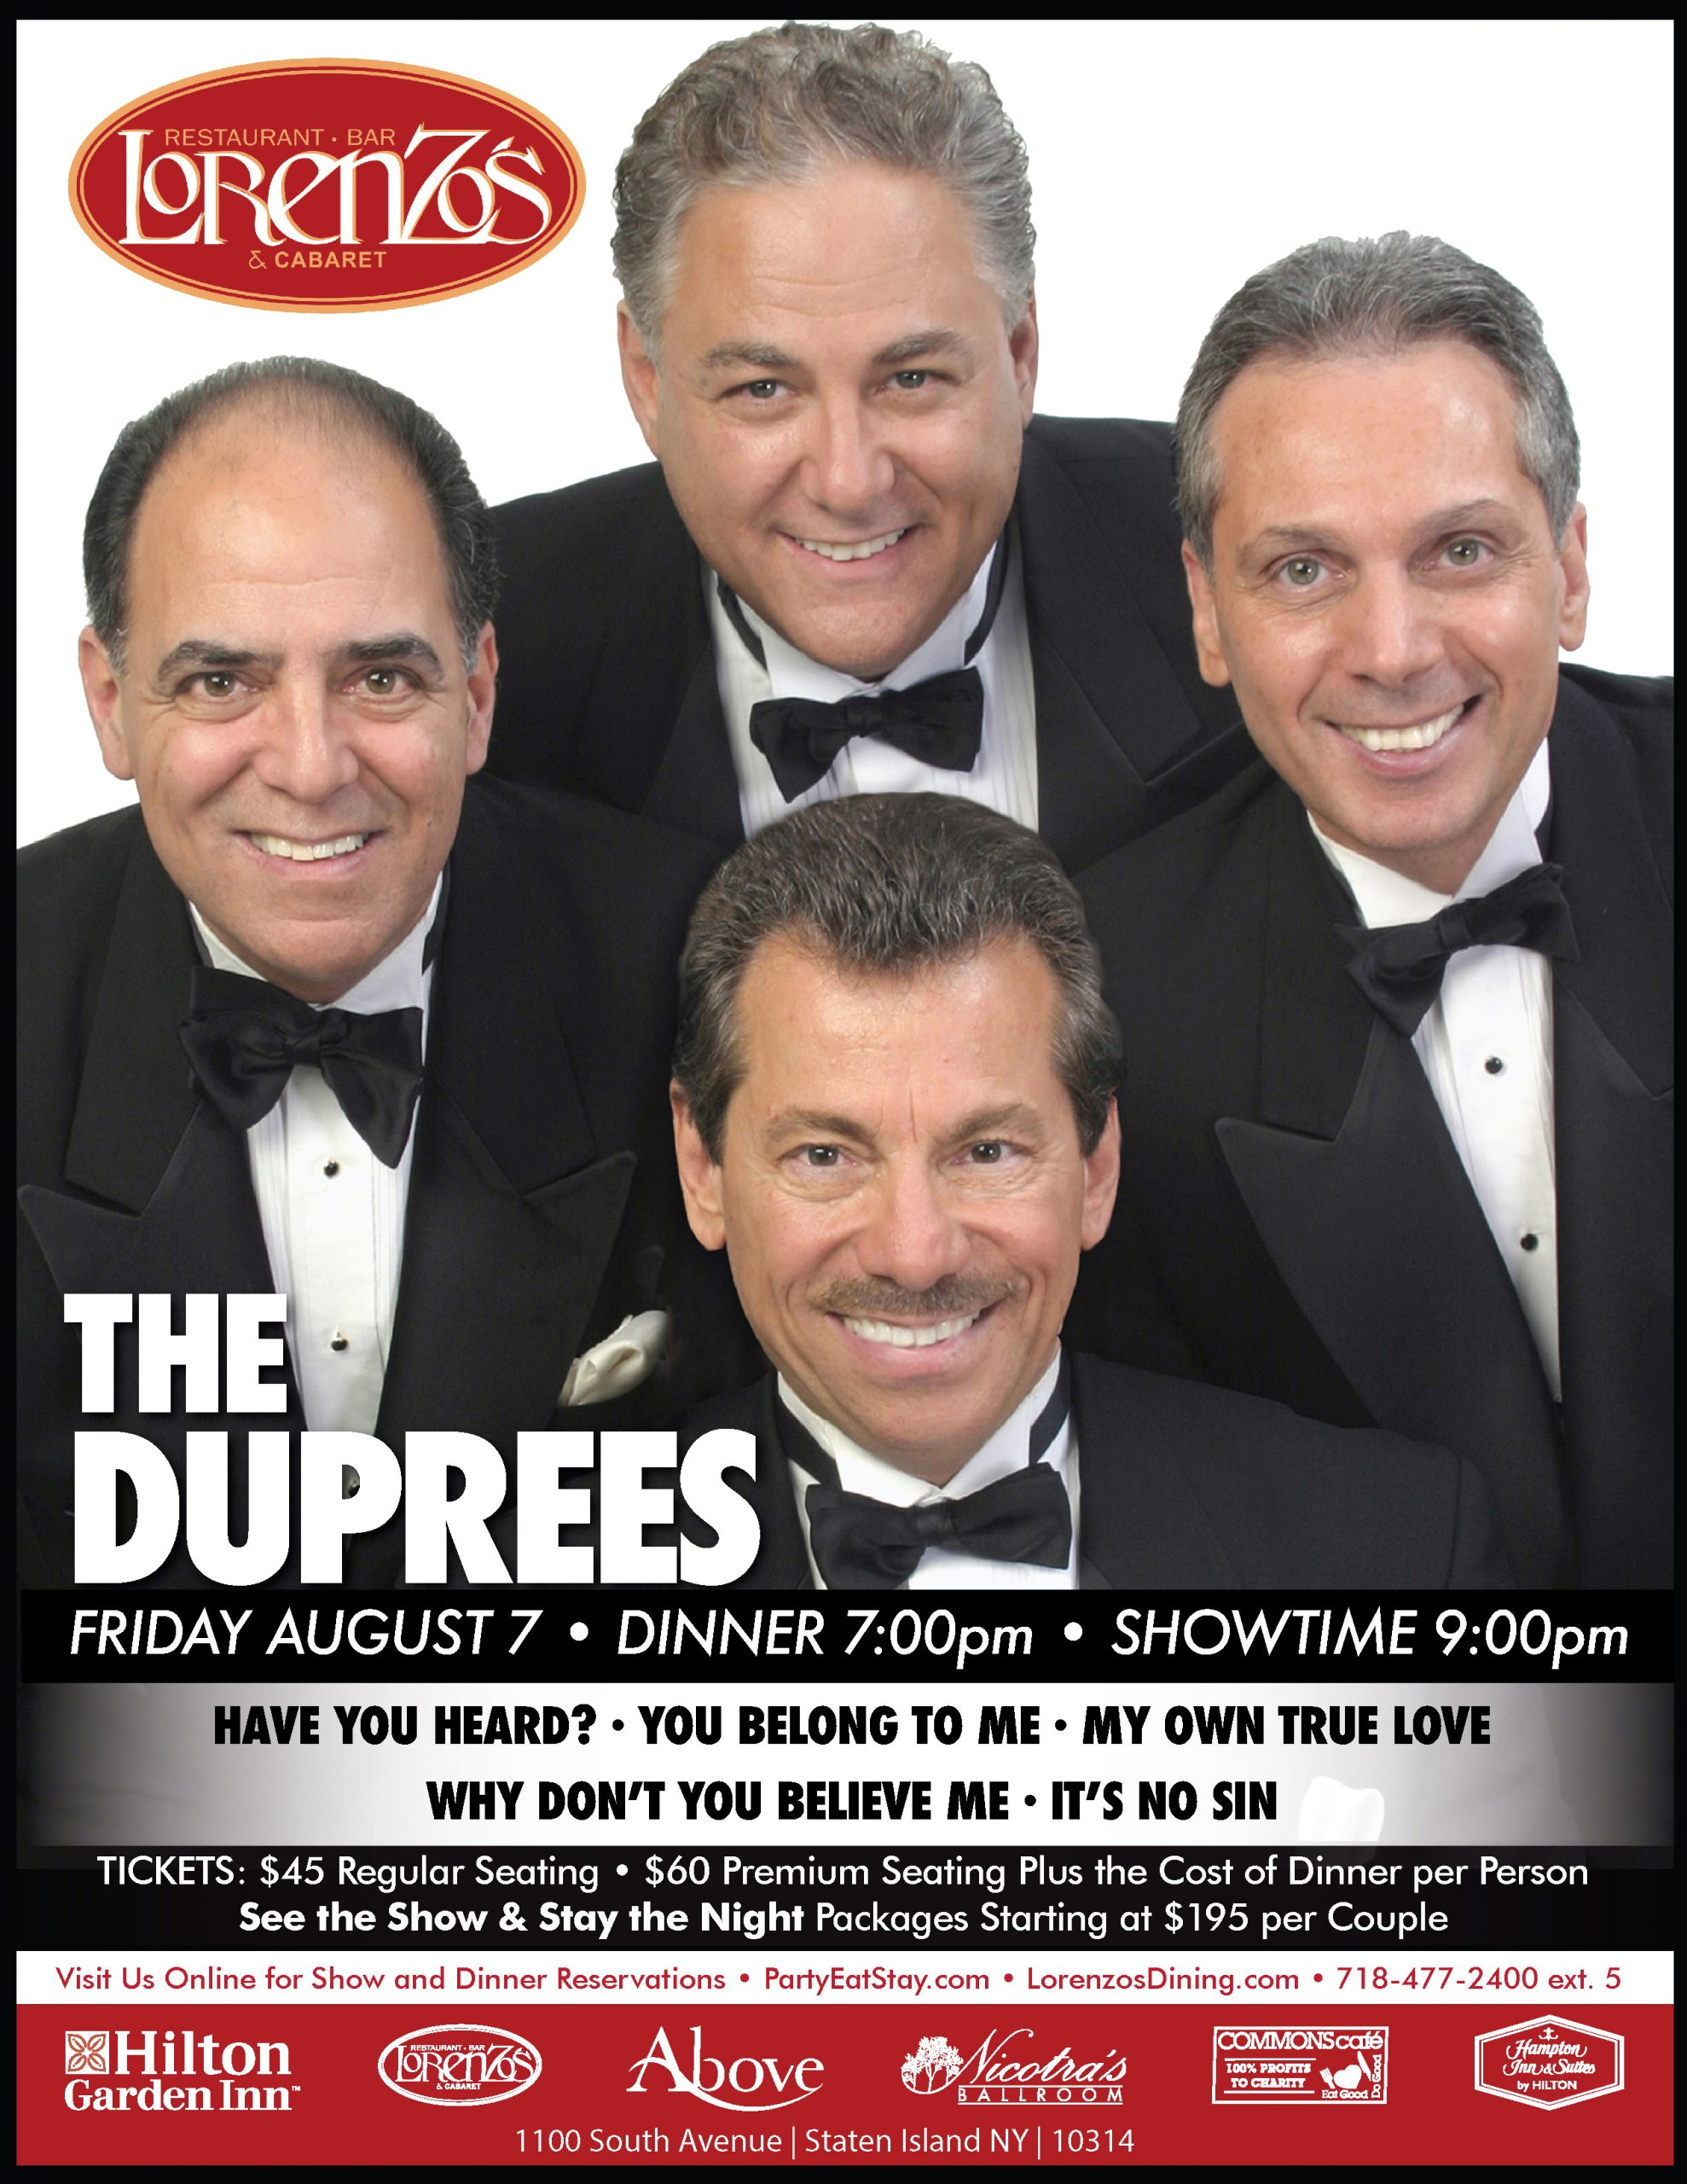 The Duprees